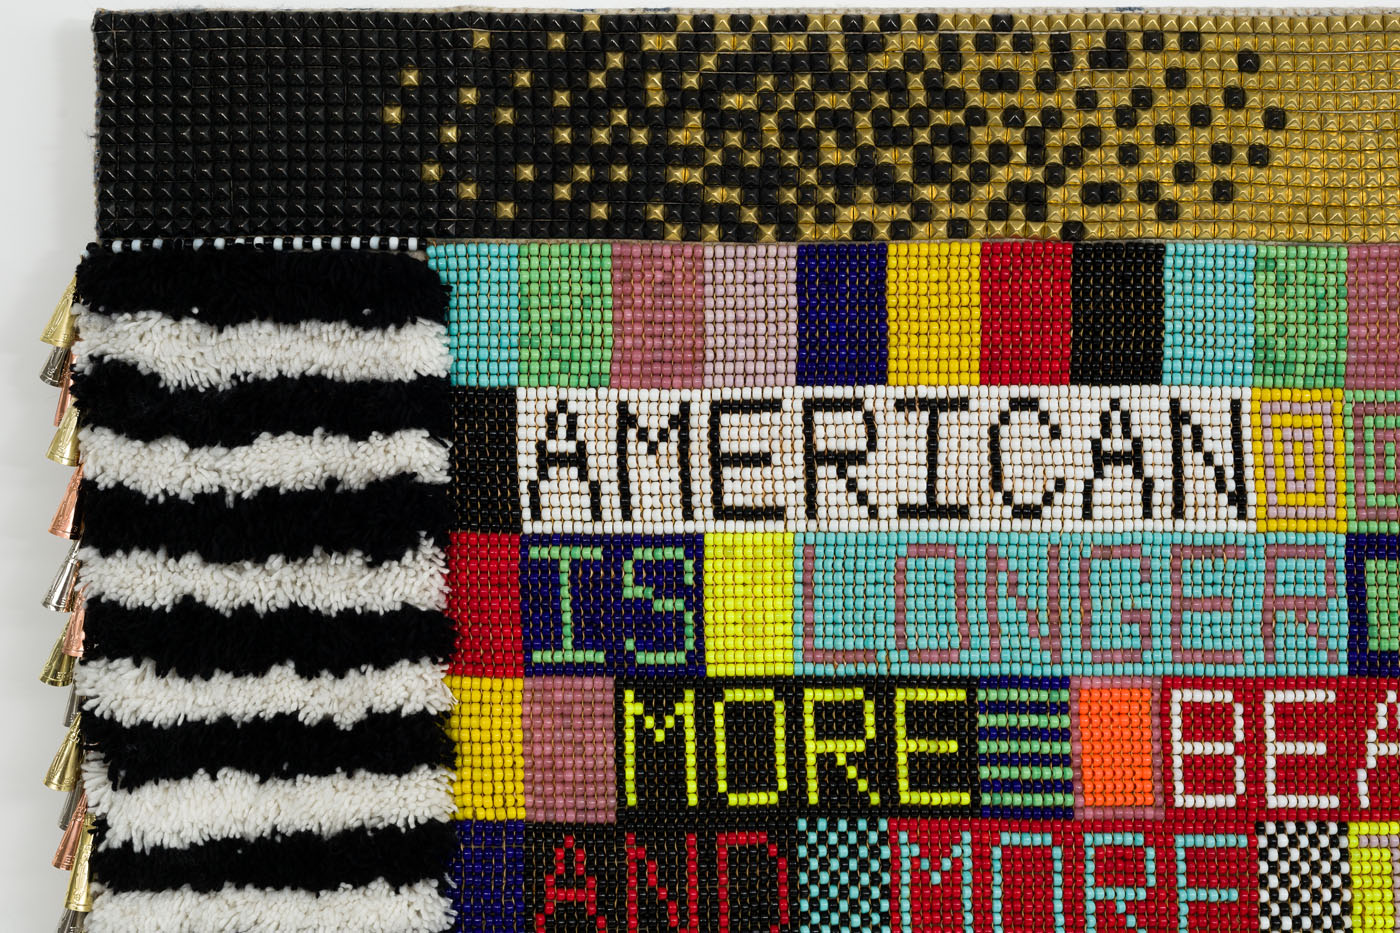 AMERICAN HISTORY (JB) wool, steel studs, glass beads, Artificial sinew, metal jingles, acrylic yarn, nylon fringe, canvas